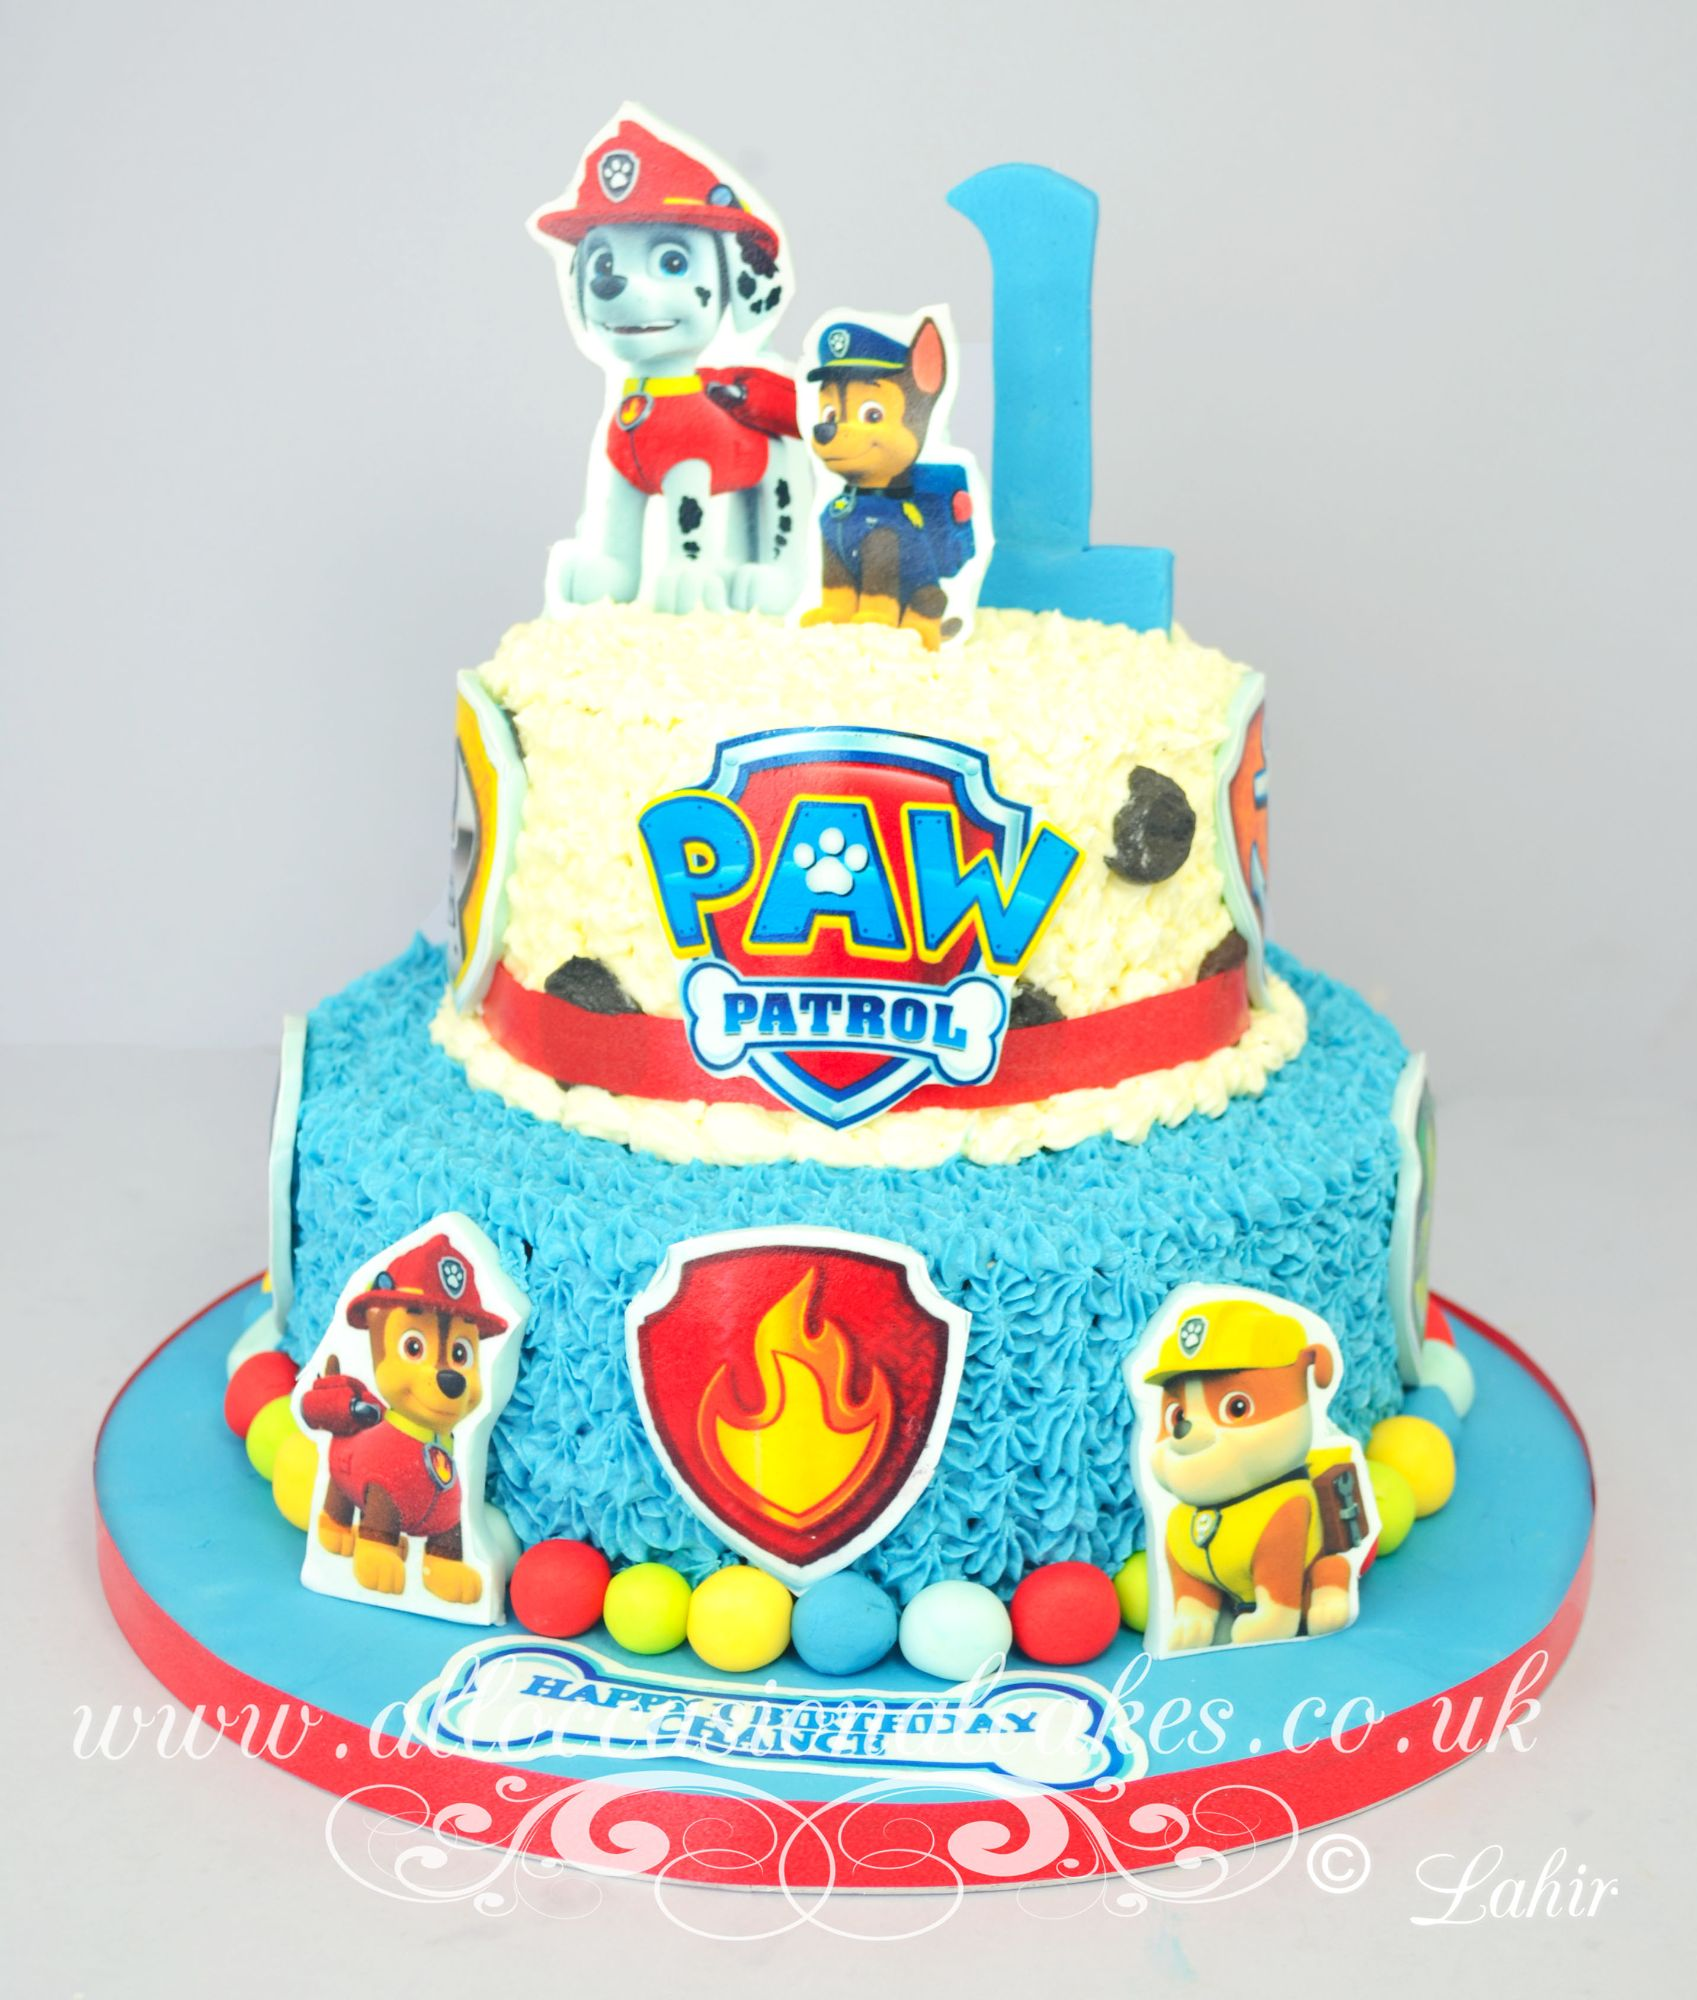 paw patrol theme birthday cake